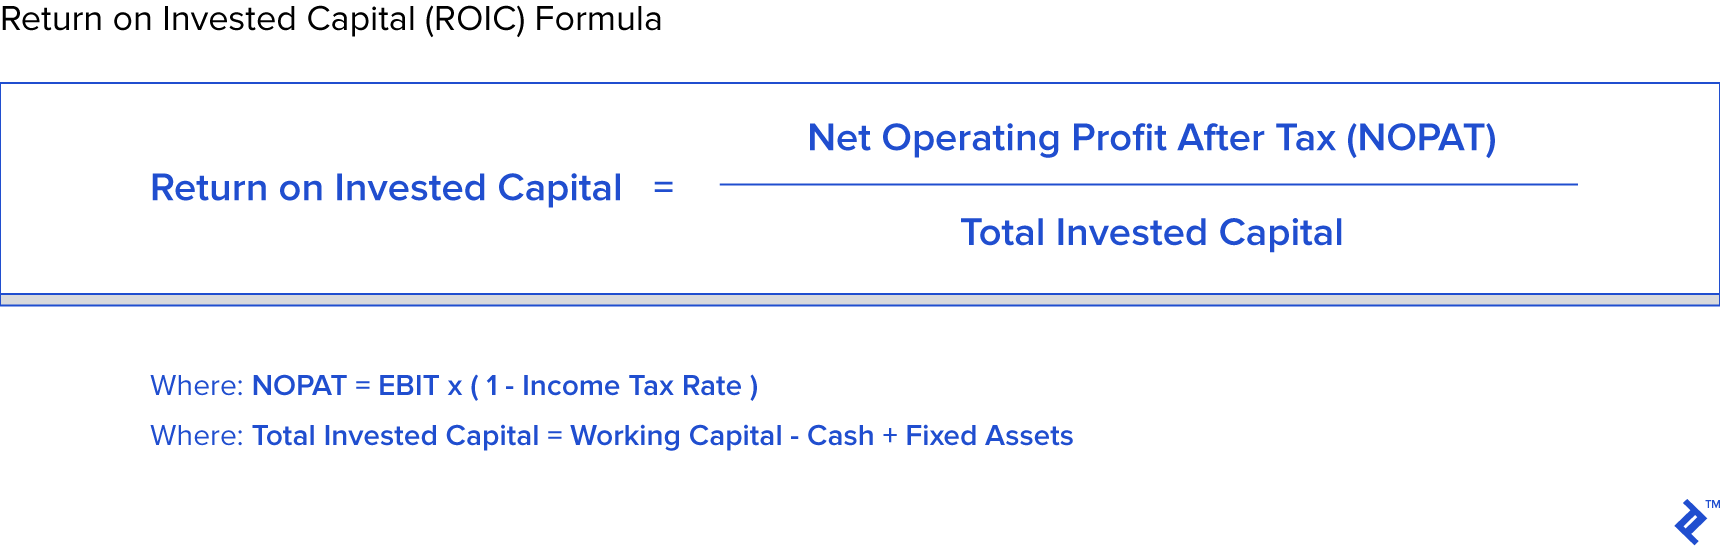 Return on invested capital ROIC formula